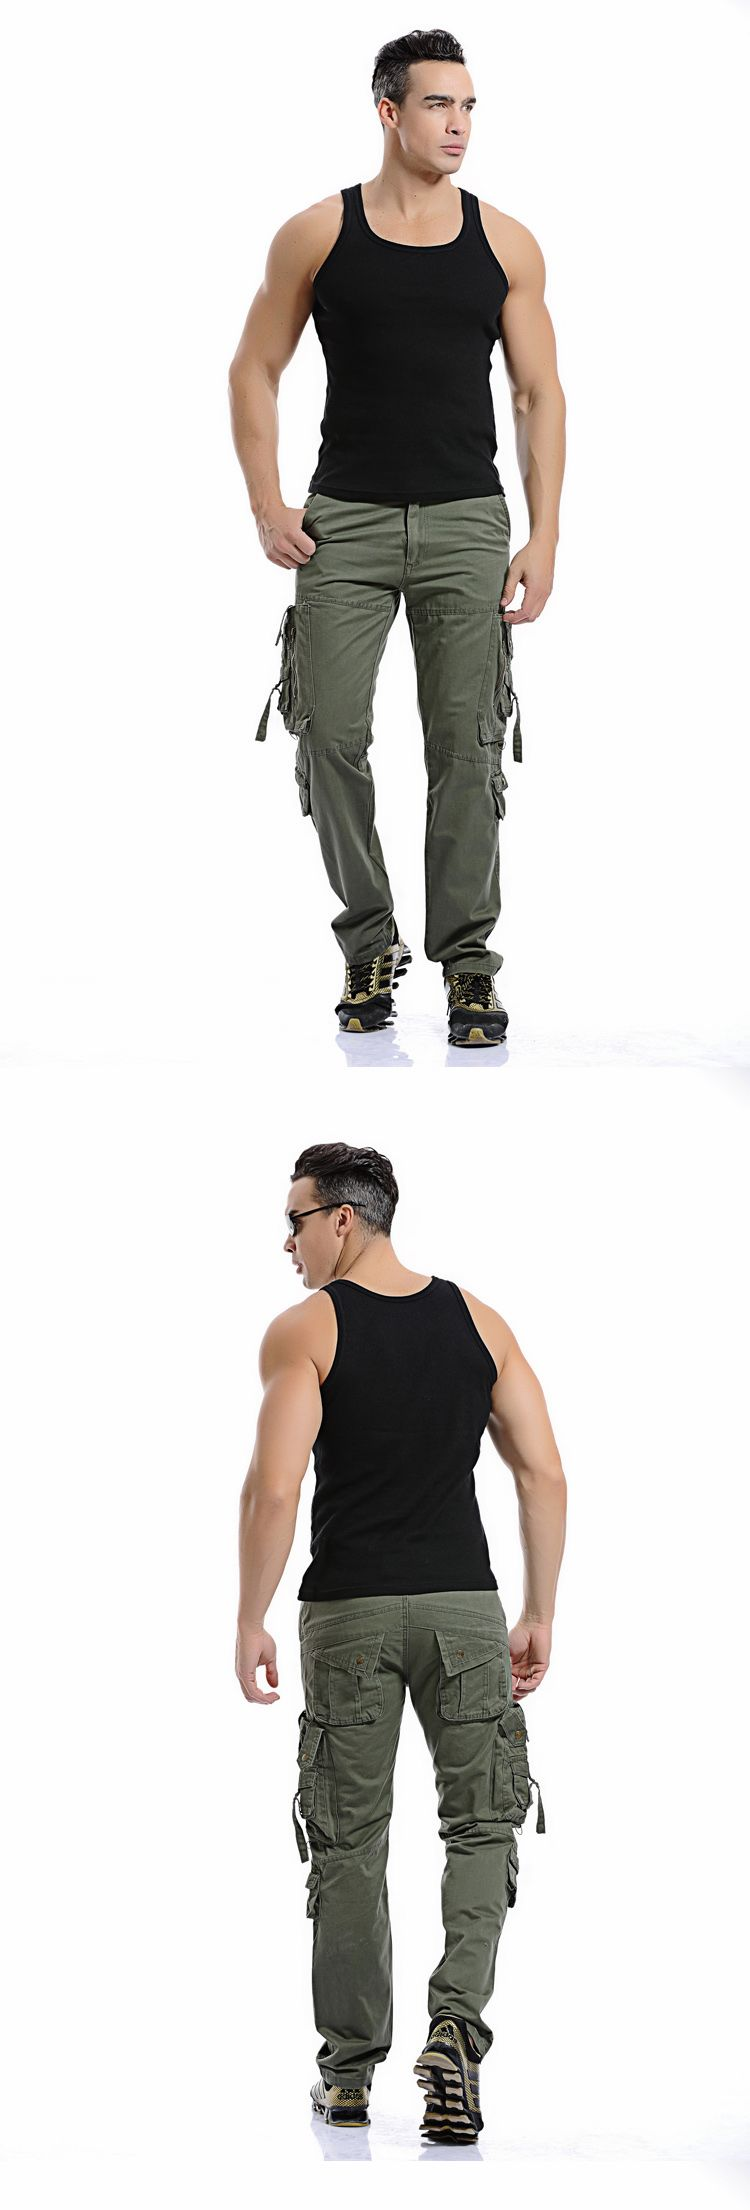 MIXCUBIC 2019 spring Autumn army tactical pants Multi-pocket washing loose army green cargo pants men casual Tooling pants 28-42 7